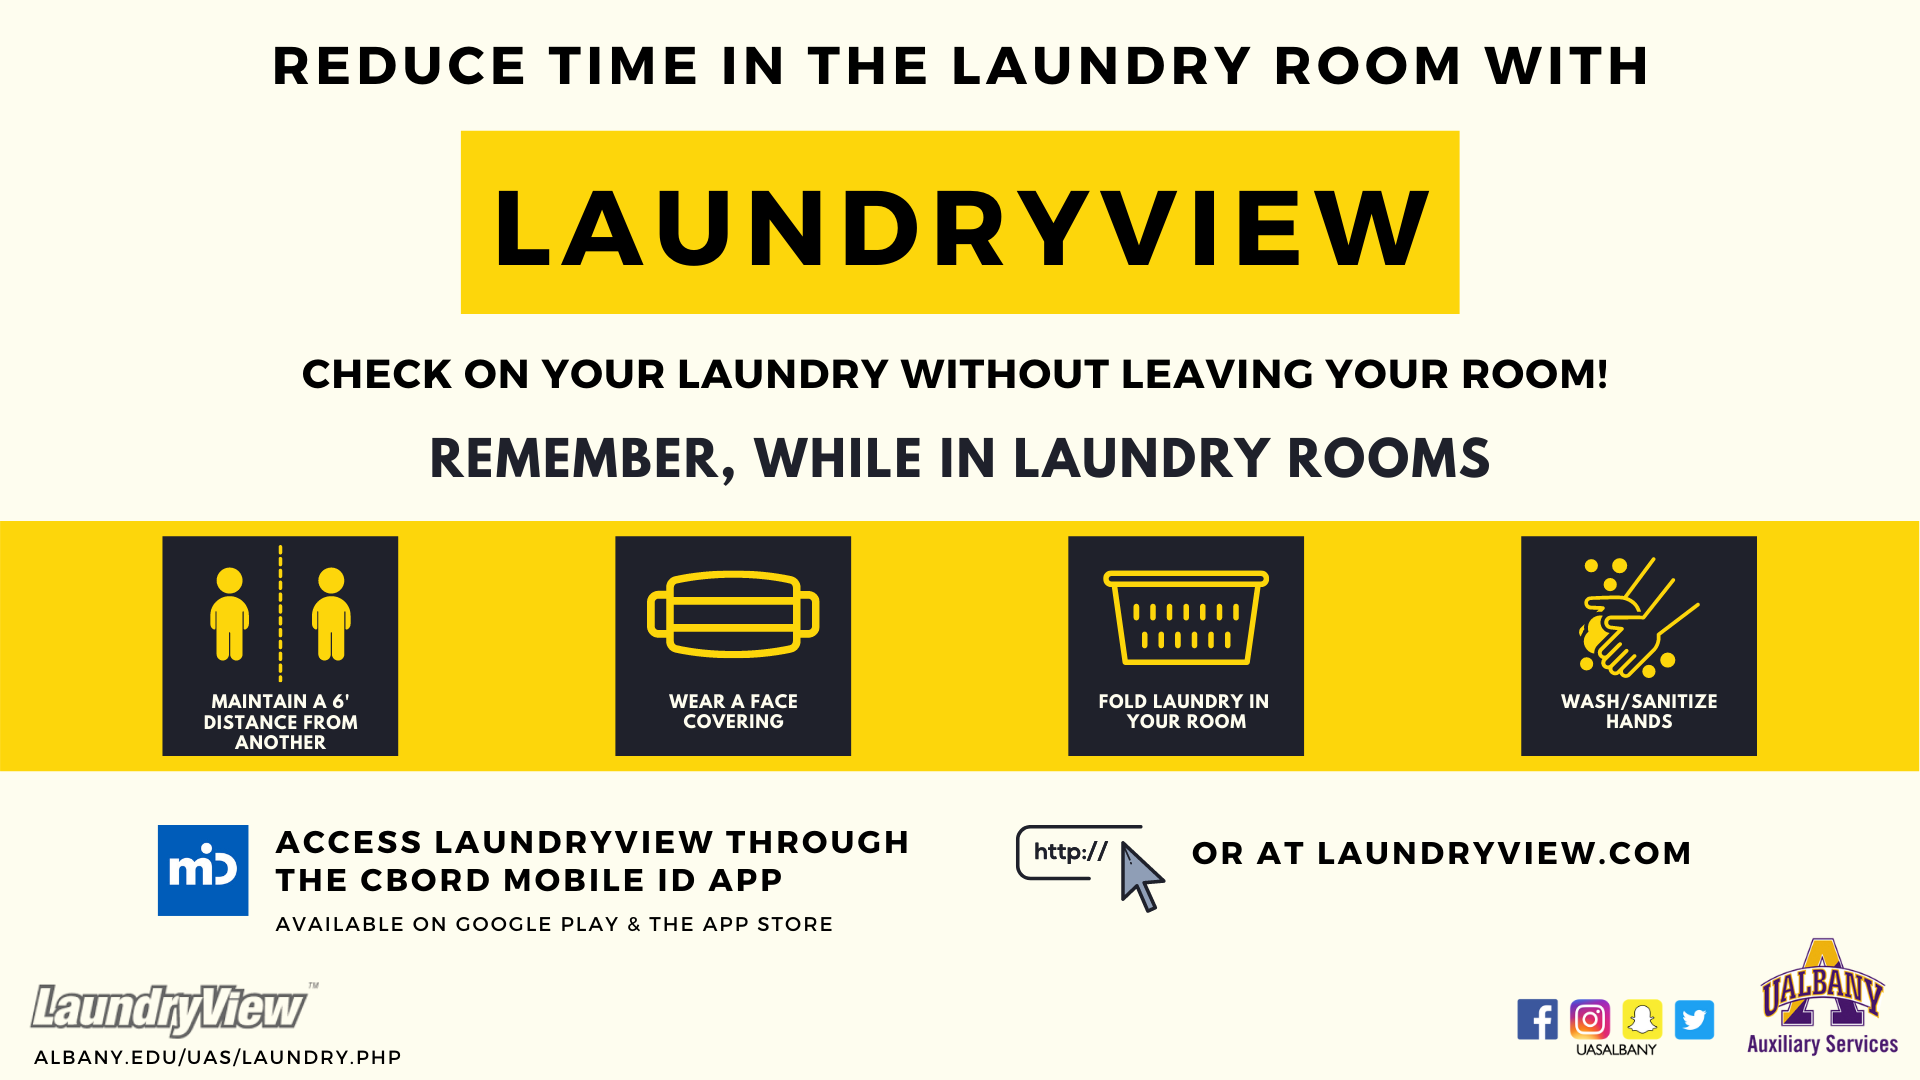 reduce time in the laundry room with laundry view. Check on your laundry without leaving your room! Remember, while in laundry rooms maintain a 6 foot distance from another. Wear a face covering. Fold your laundry in your room Wash and sanitize hands. Access laundryview through the CBORD mobile ID app, available on google play or the App Store. Or at Laundryview.com. Laundryview logo. Gold and purple A logo